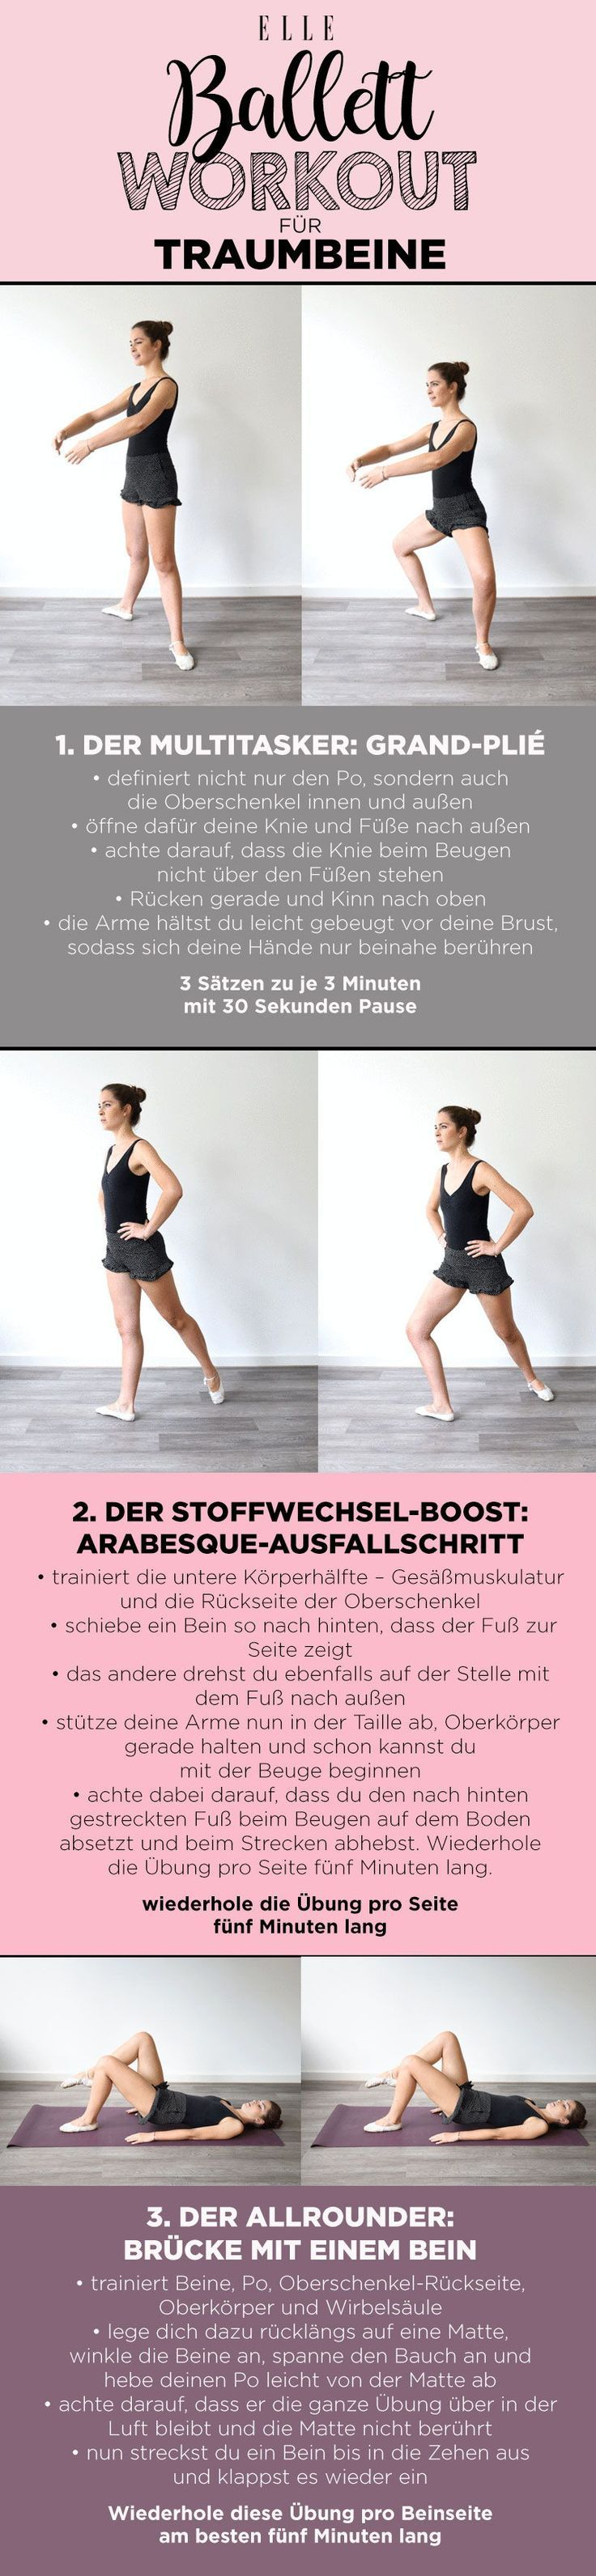 Ballett-Workout: drei Profi-Übungen für Traumbeine#workout #fitness #ballett #... - #FitnessMotivati...